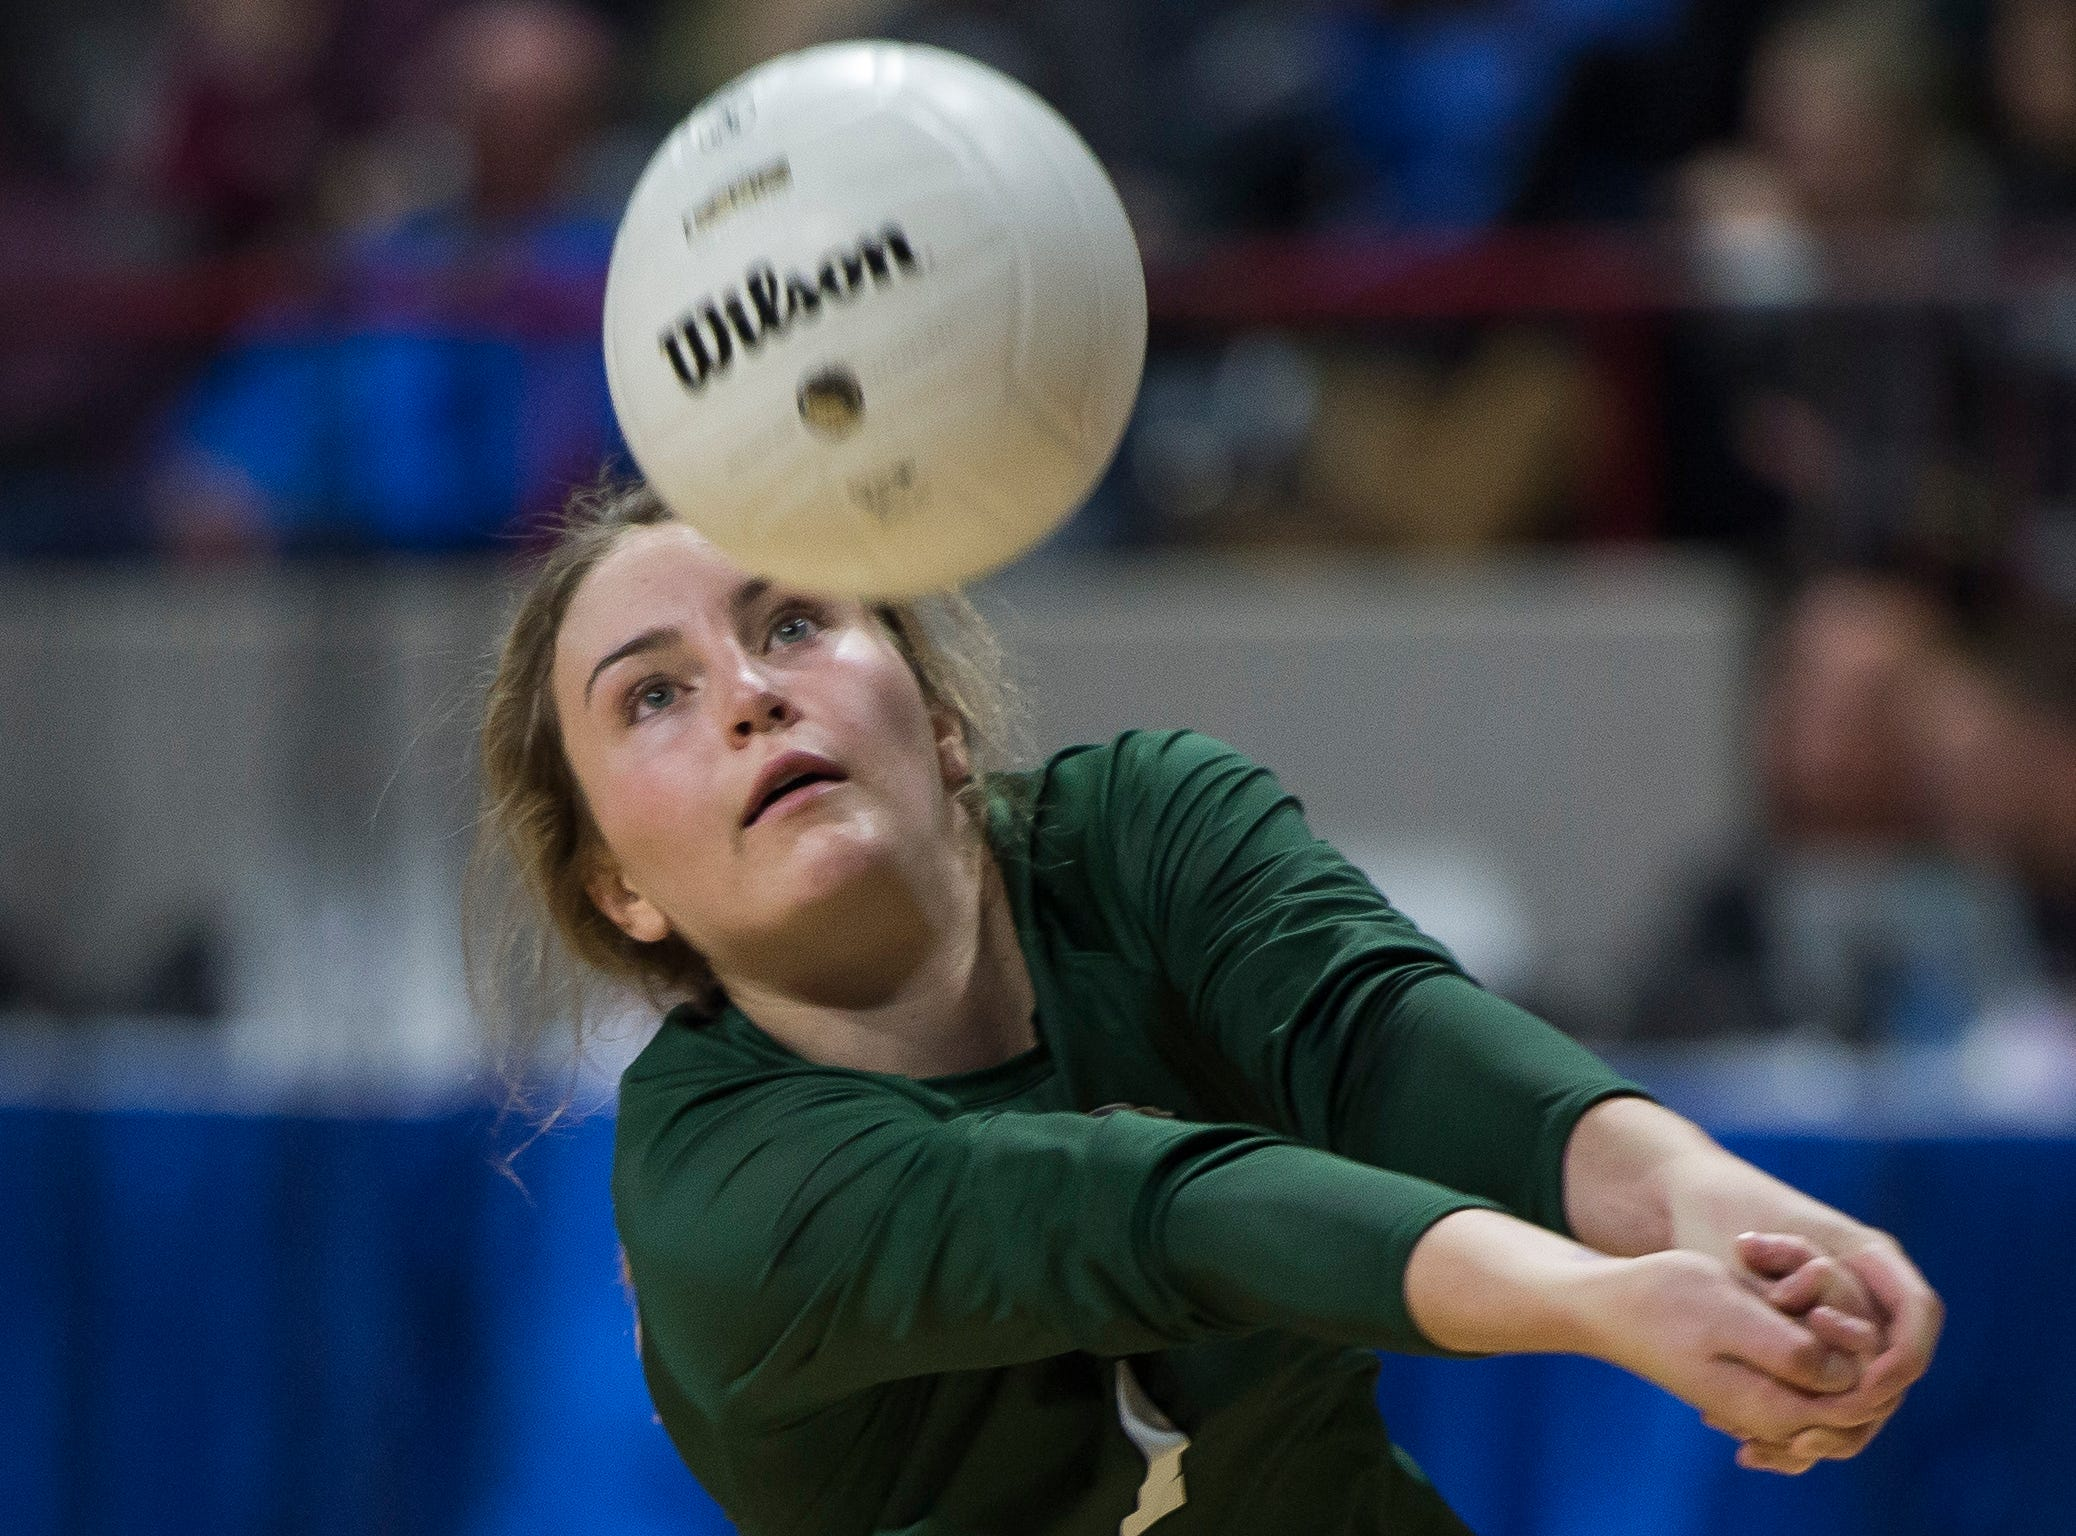 Fossil Ridge High School senior Charlie Durbin (1) controls a volley during a state first round game against Windsor High School on Thursday, Nov. 8, 2018, at the Denver Coliseum in Denver, Colo.